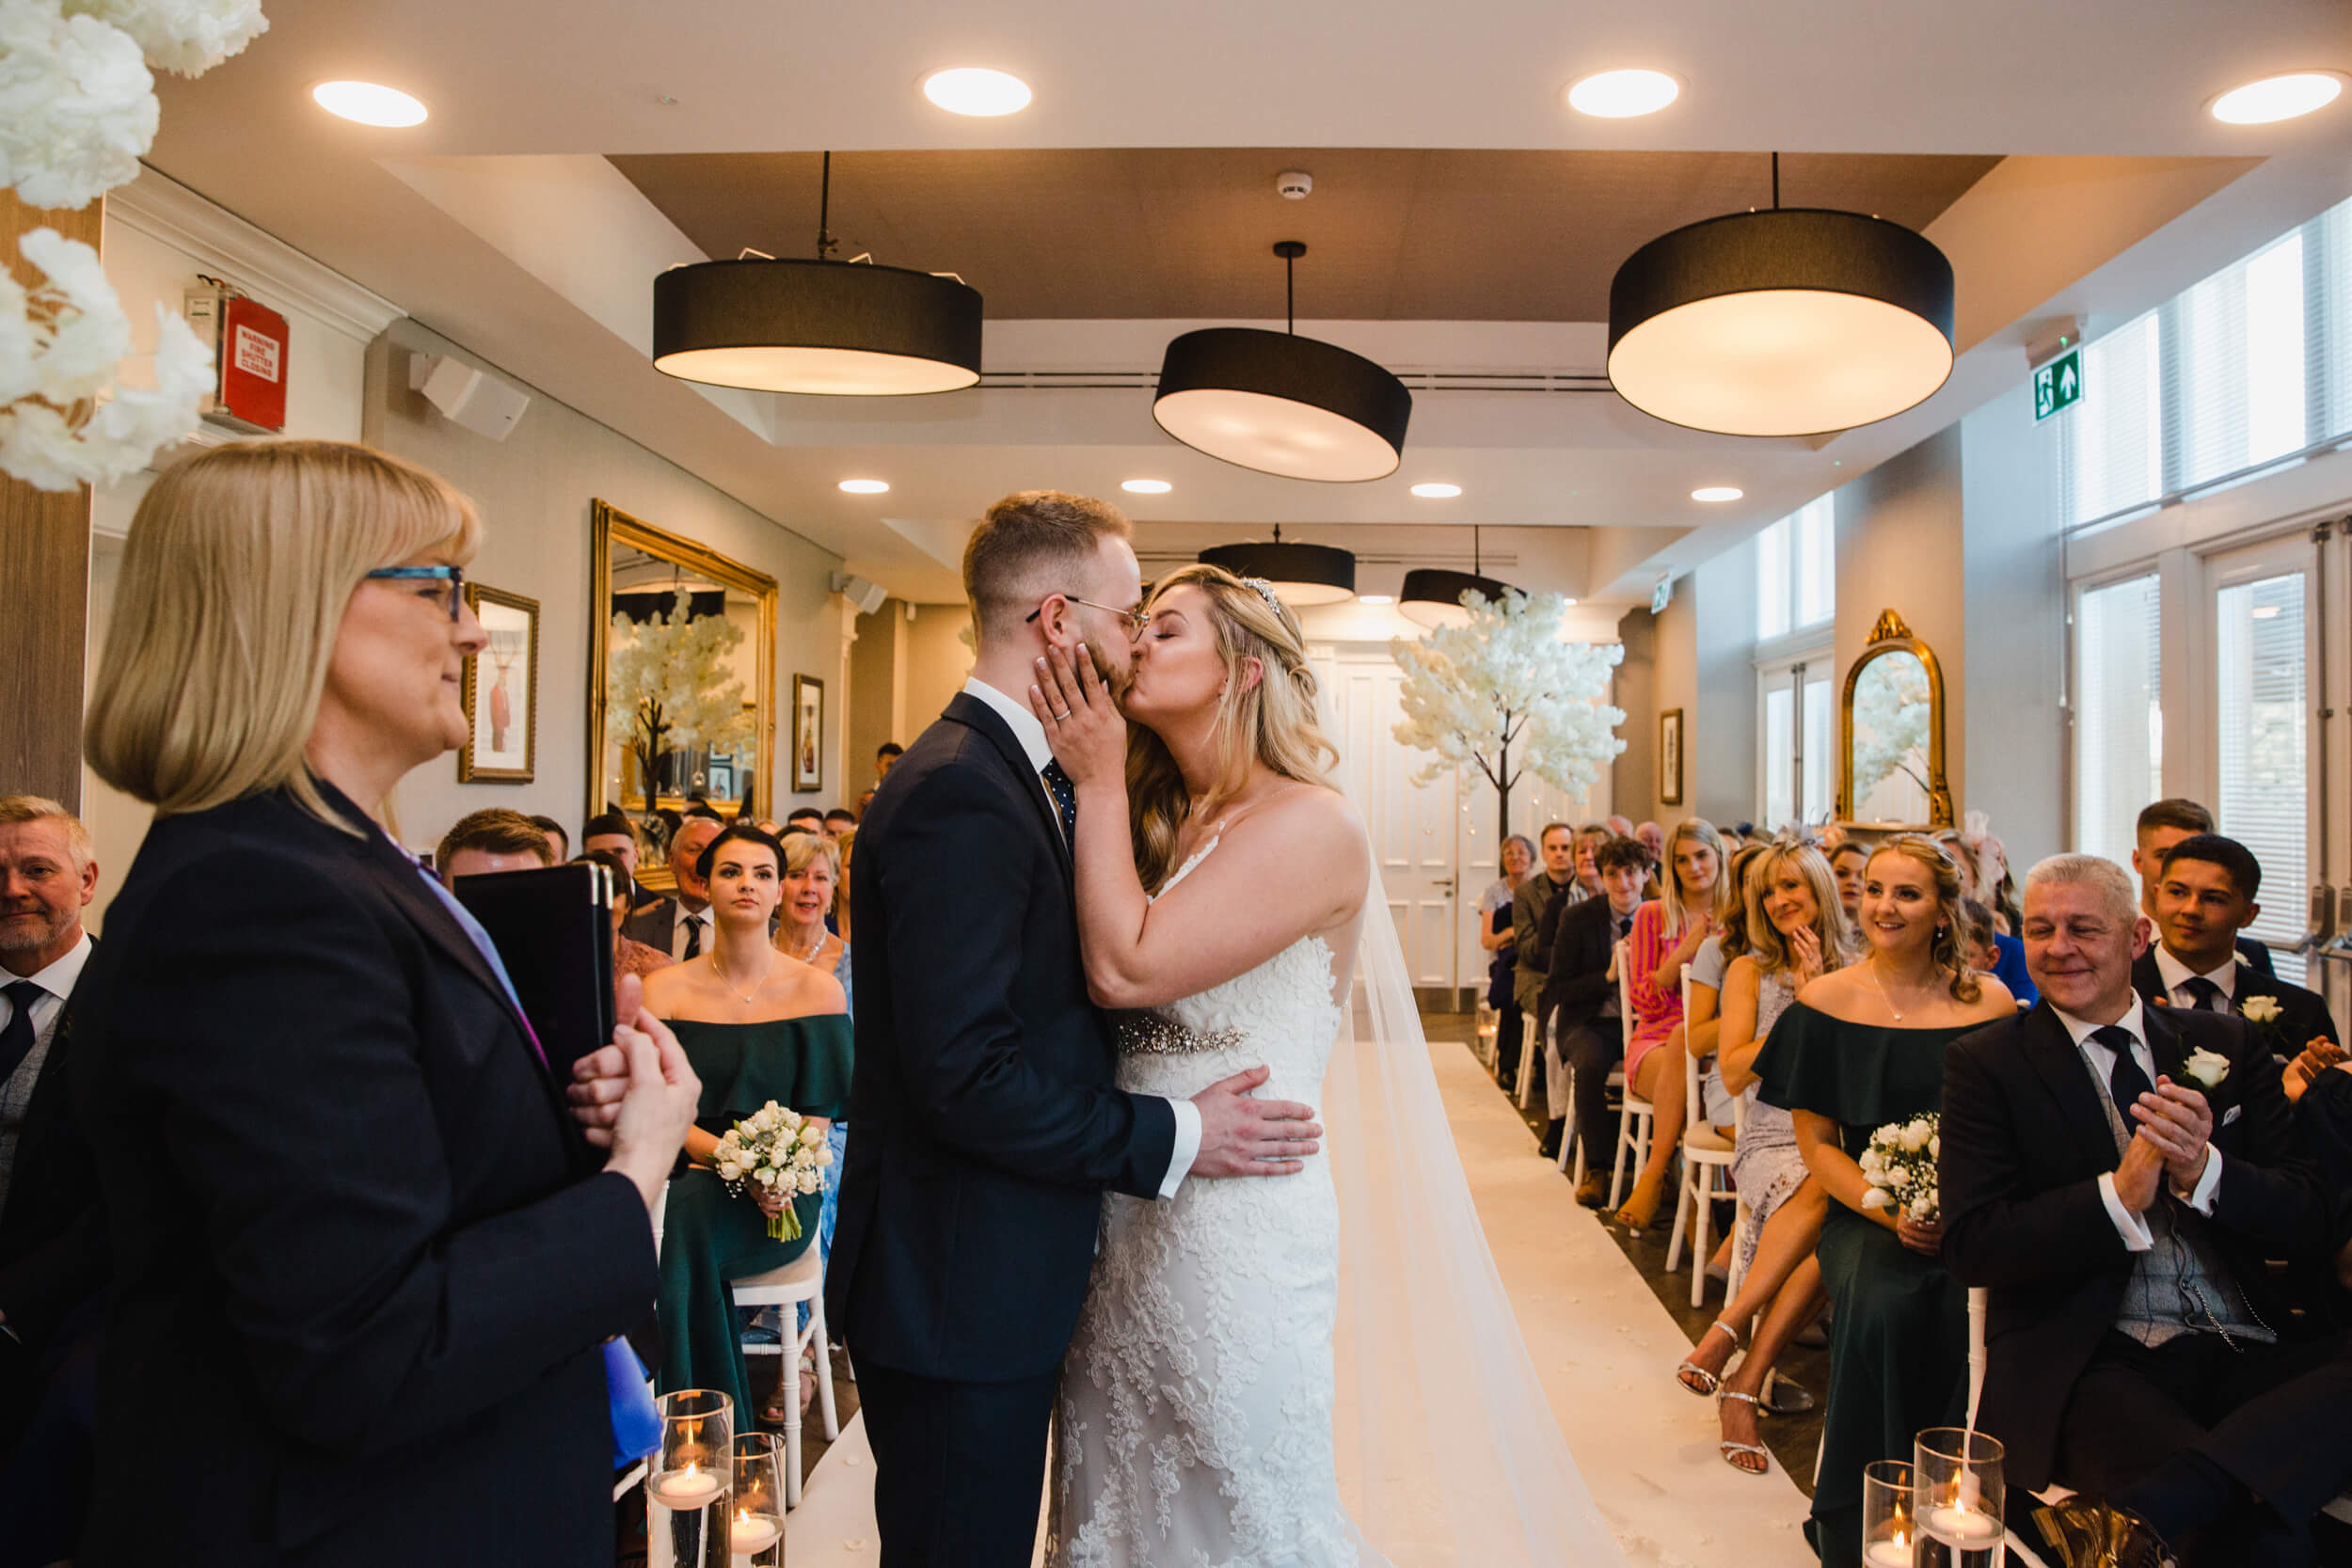 bride and groom first kiss at top of aisle with family congratulating